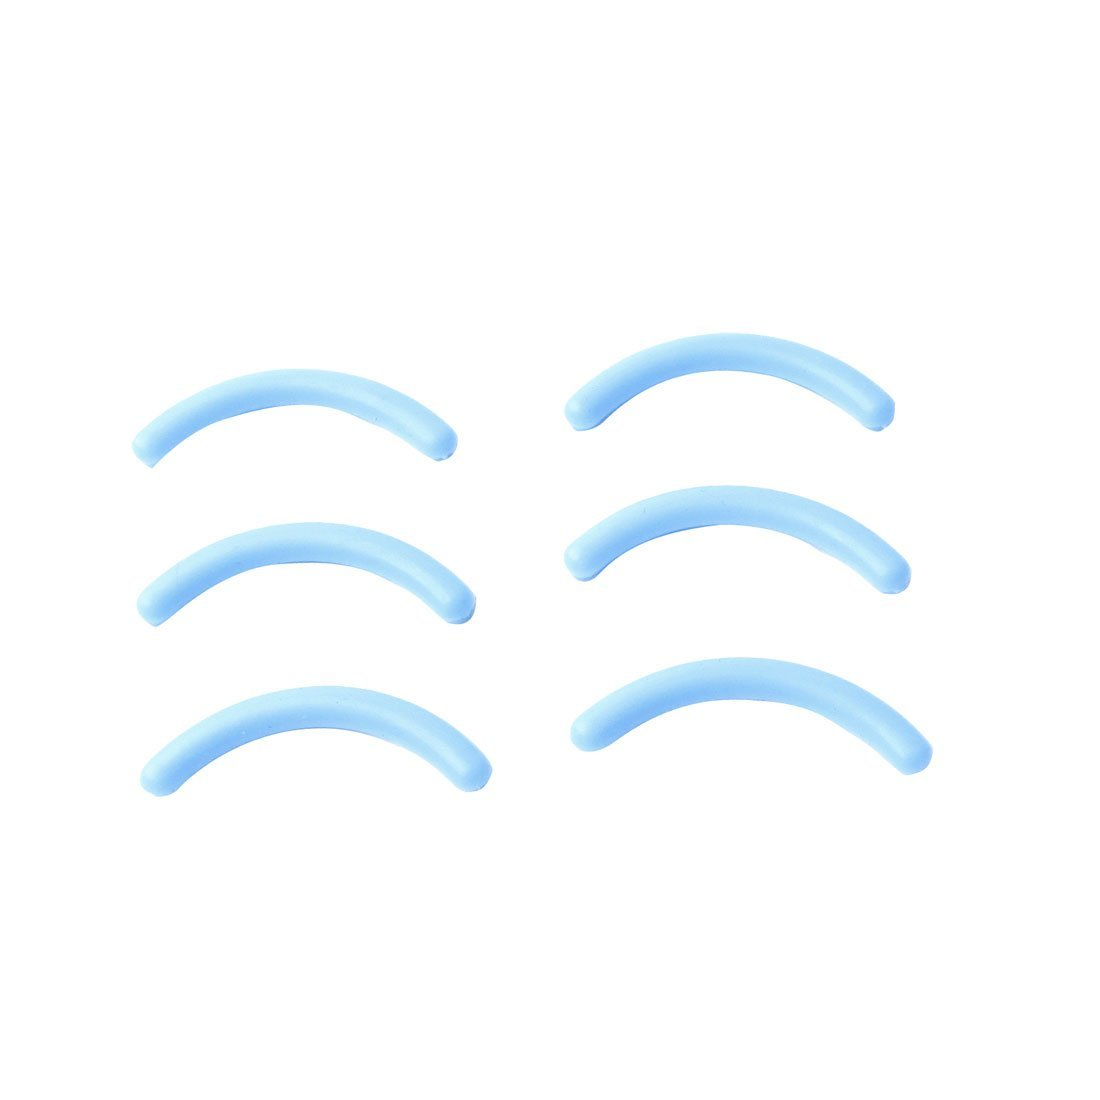 Sourcingmap Rubber Lady Cosmetic Makeup Eyelash Curler Pads, Baby Blue - 6-Piece a13071200ux1066